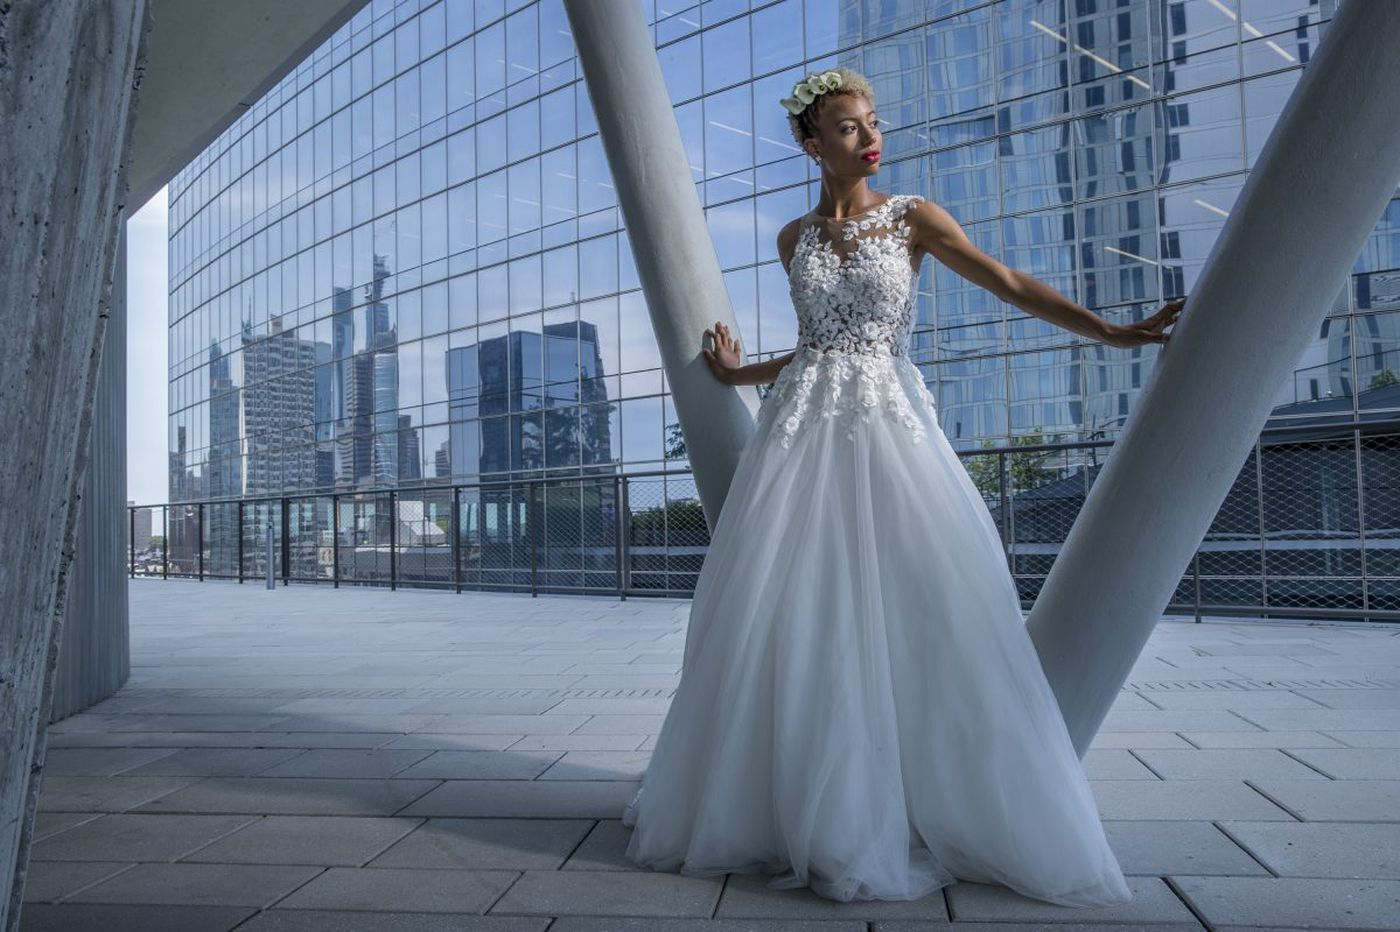 Ball gown redux: Full skirts back for bridal, but reinvented